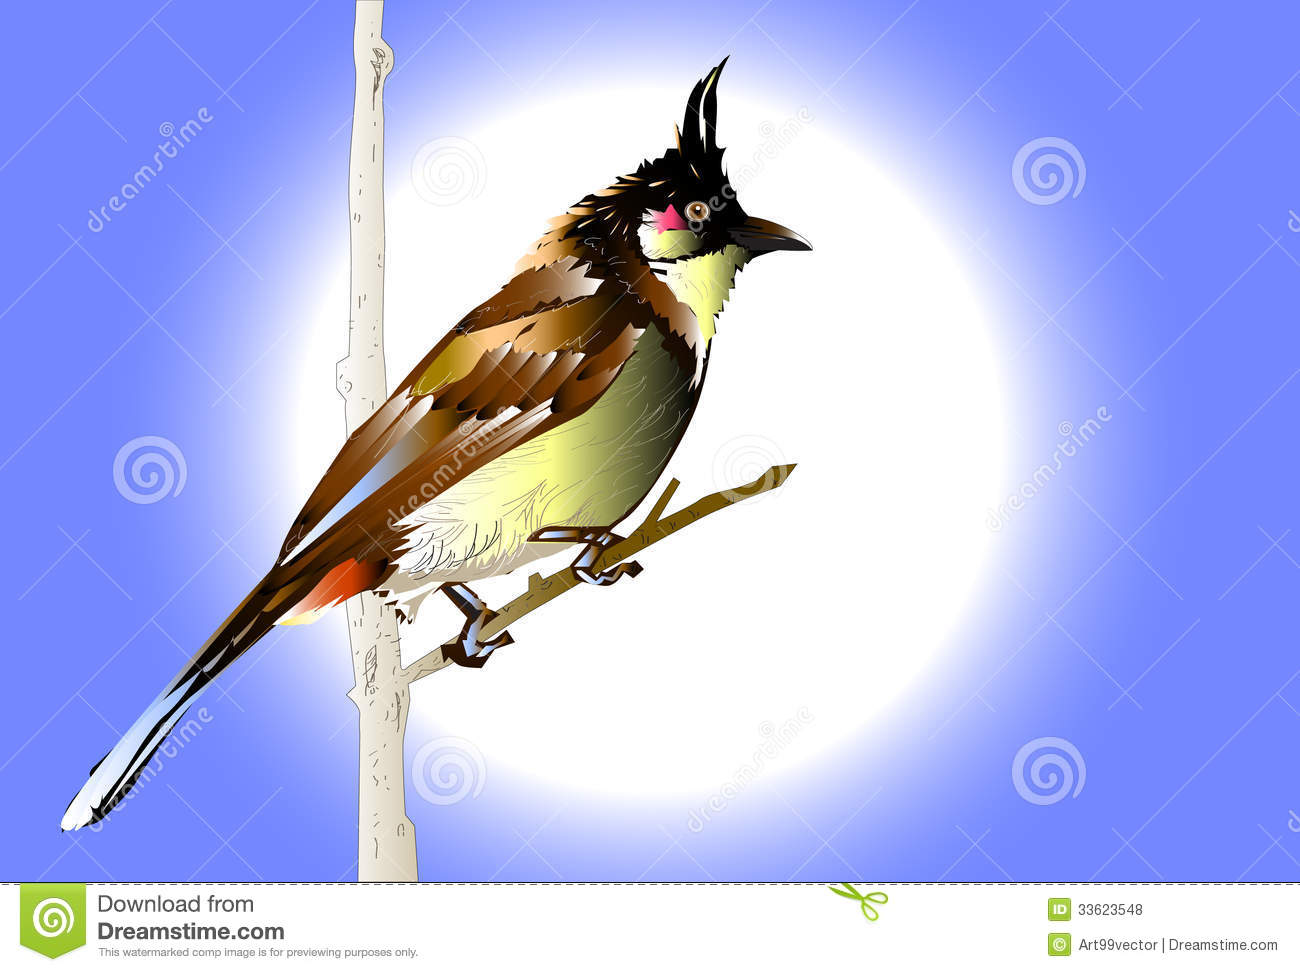 Graphic Natural Drawing Images Bird Decorated With Lines And Colors